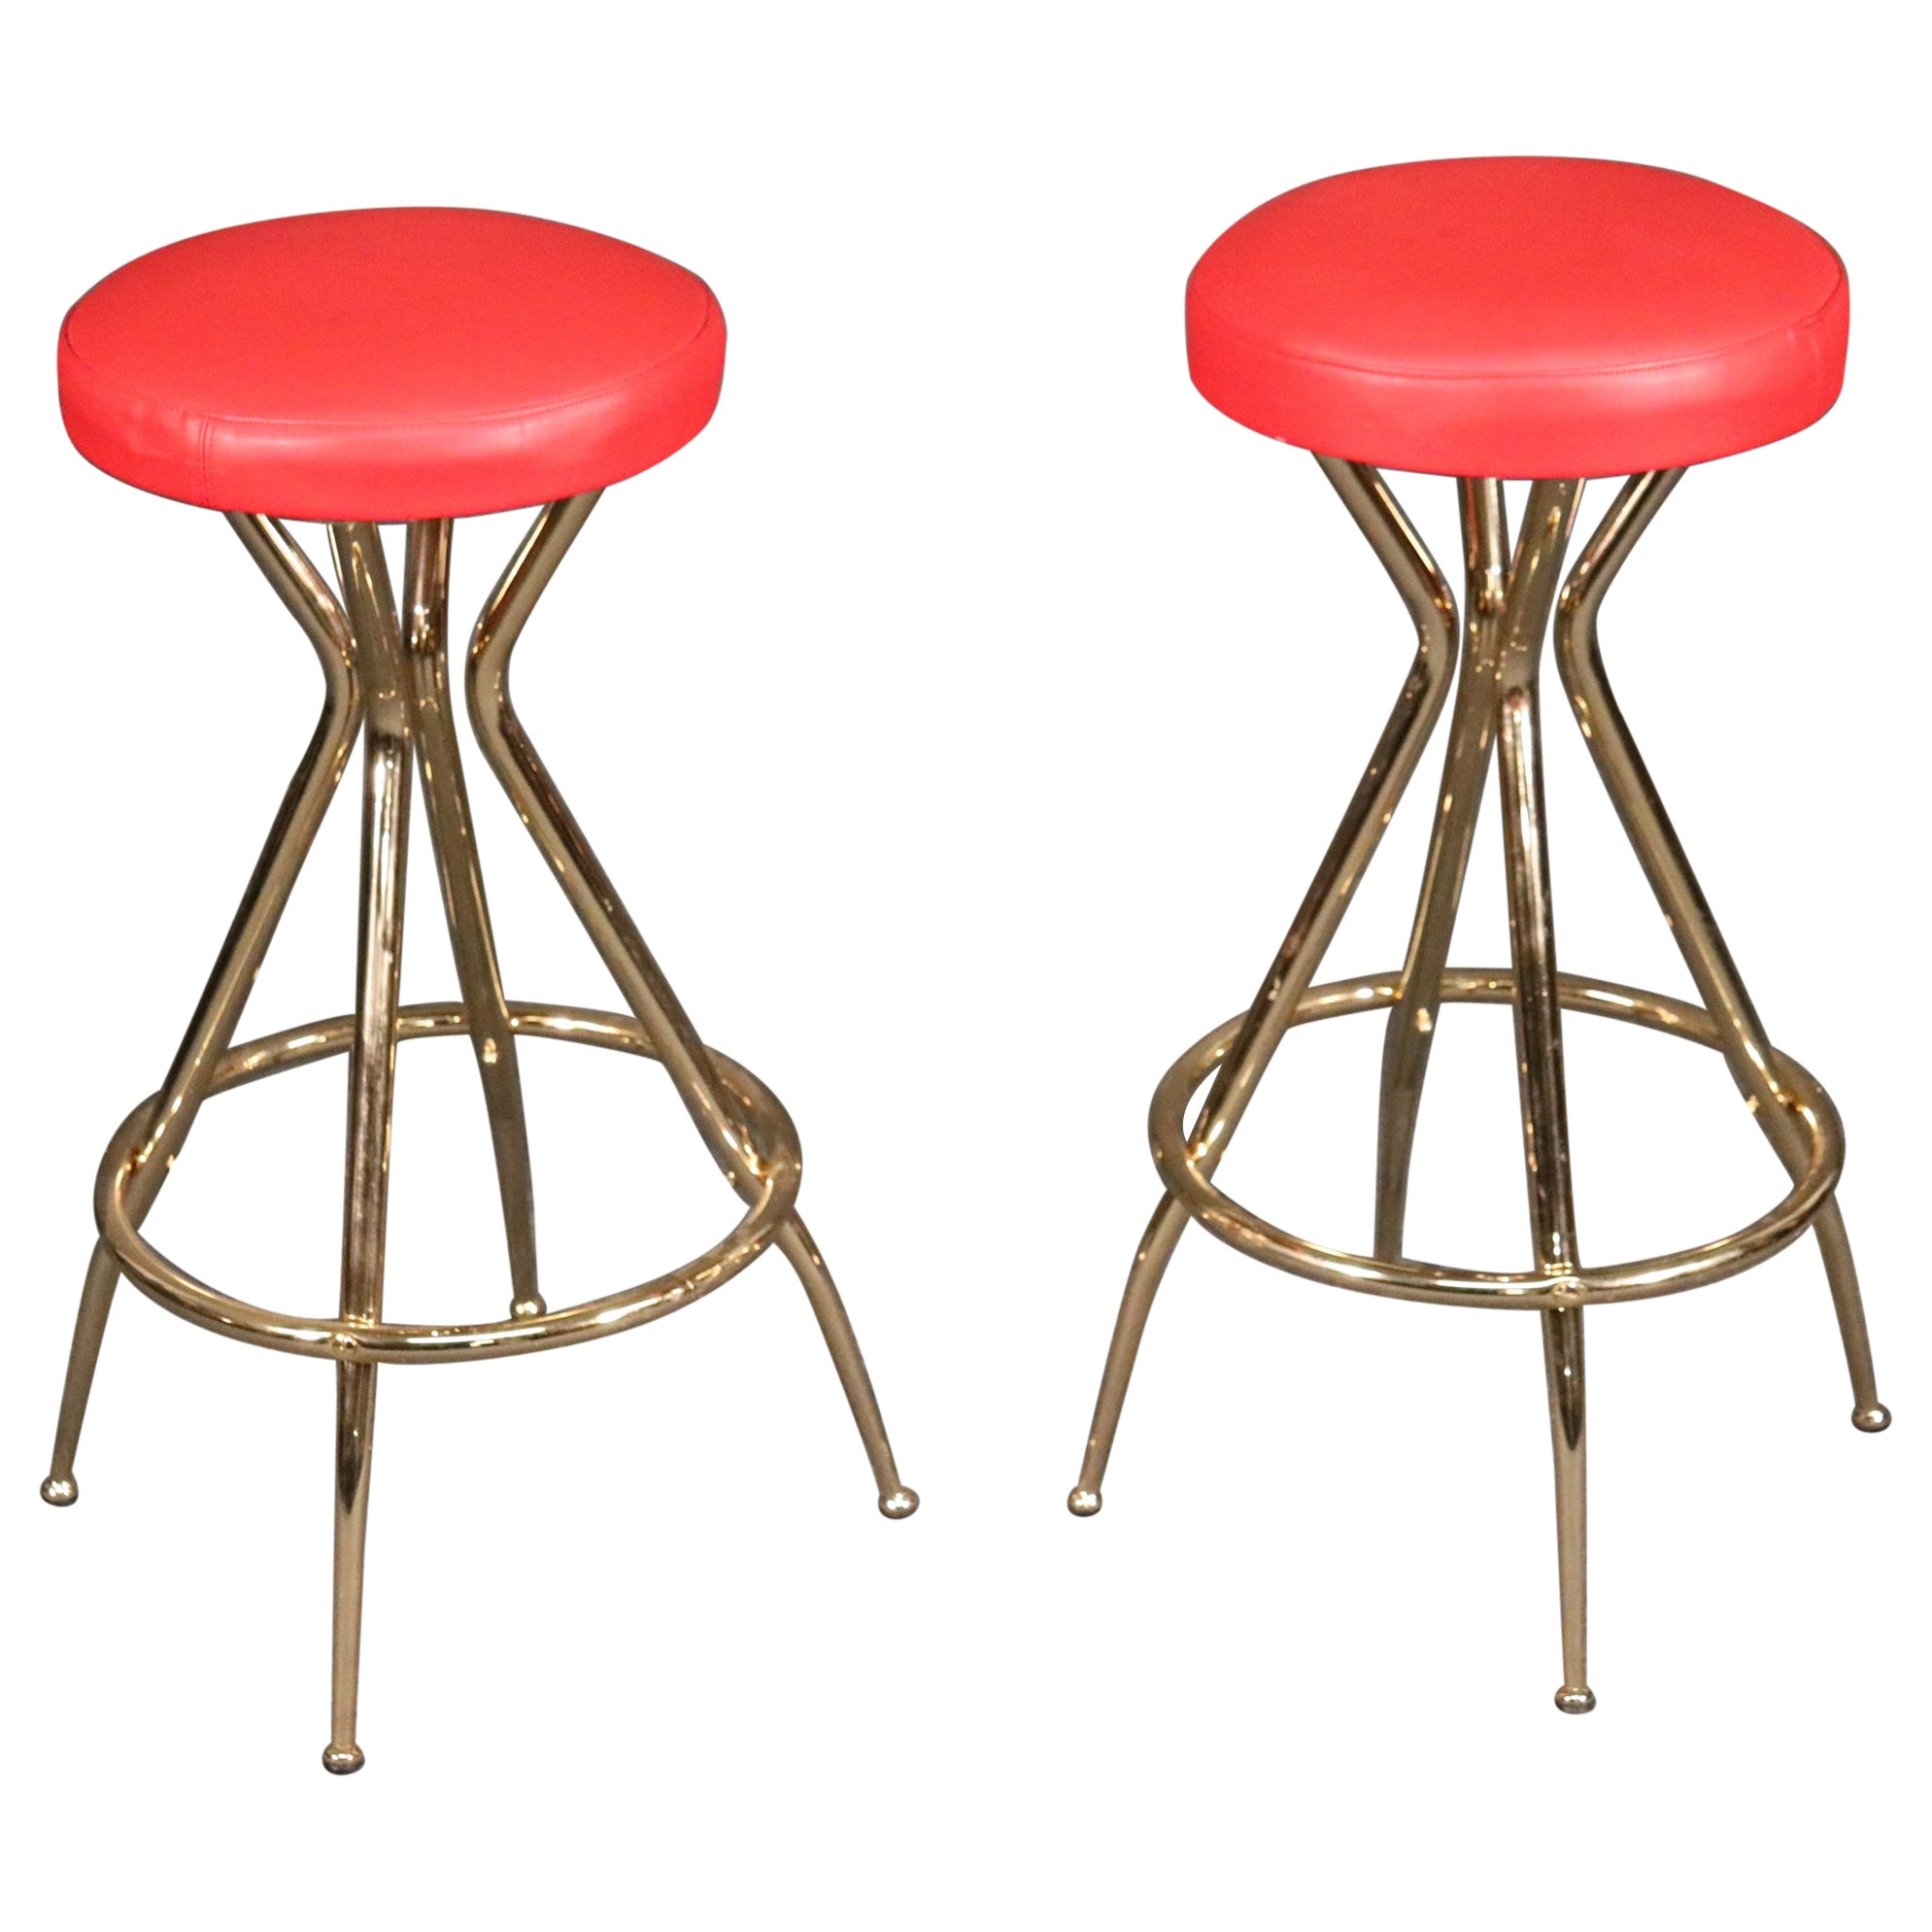 Pair of Gio Ponti Style Italian Midcentury Modern Bar Counter Stools